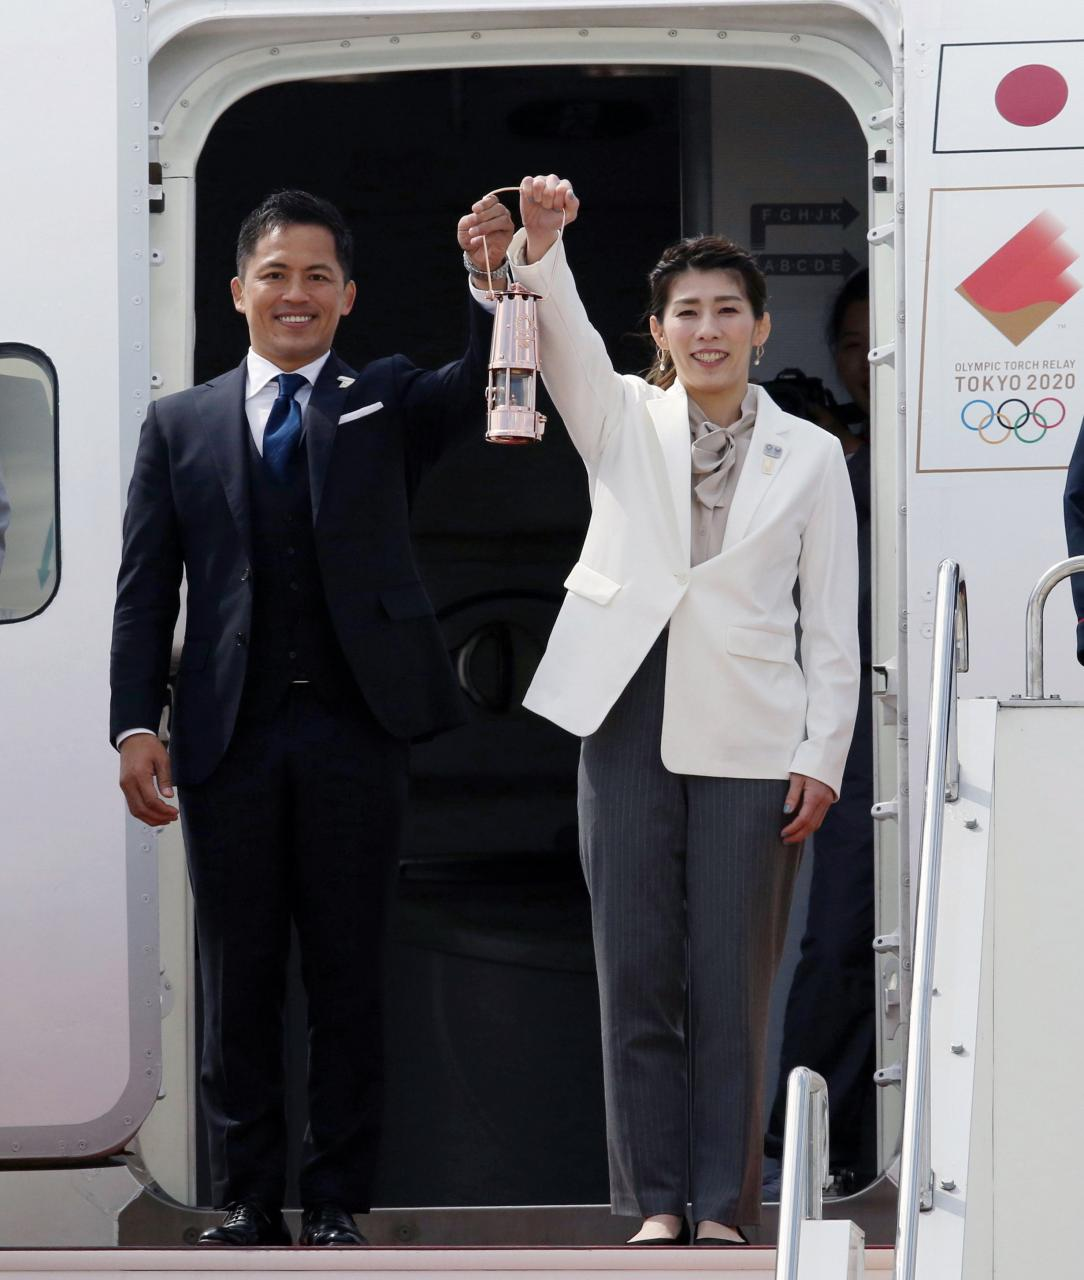 the Tokyo Olympic Games